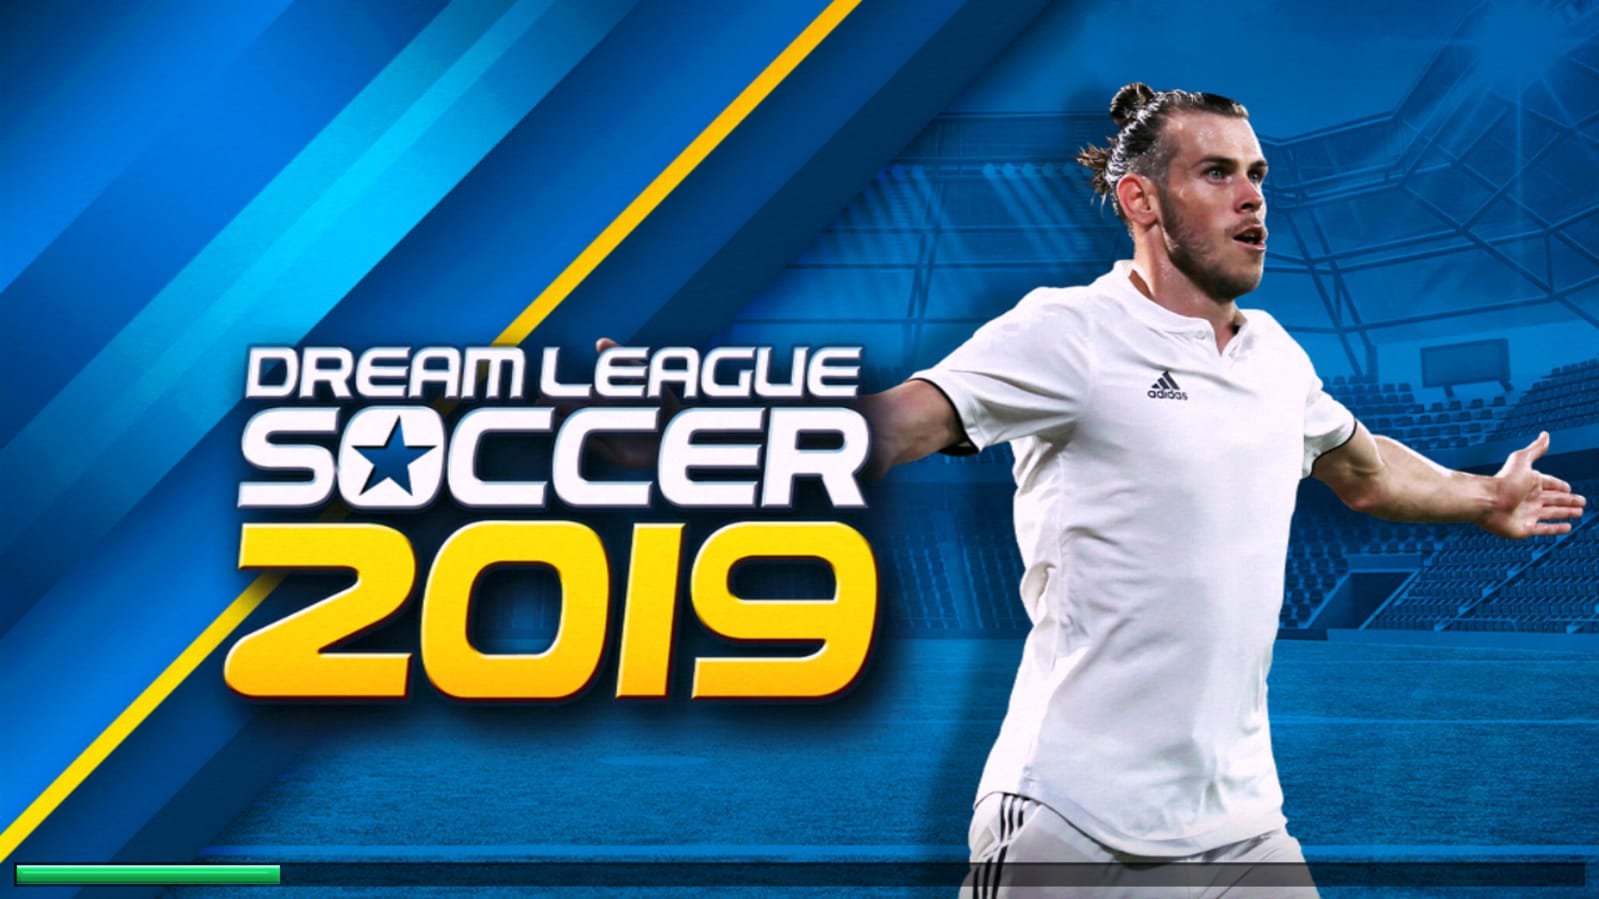 Dream League Soccer 20307 1 SPECIAL Vote For Your Favorite Game